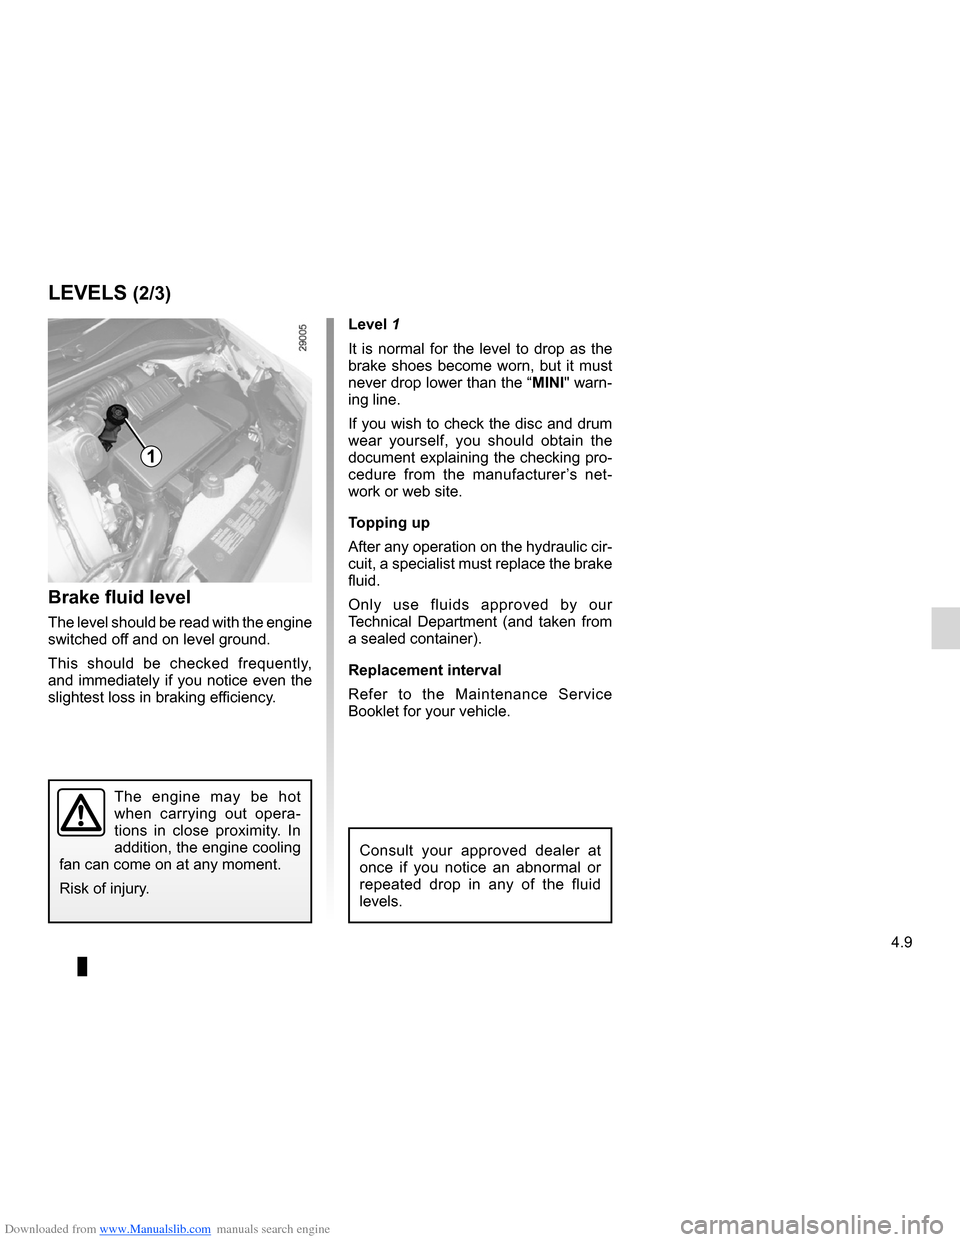 RENAULT CLIO 2012 X85 / 3.G Owners Manual Downloaded from www.Manualslib.com manuals search engine brake fluid .............................................................. (current page) levels: brake fluid  ................................